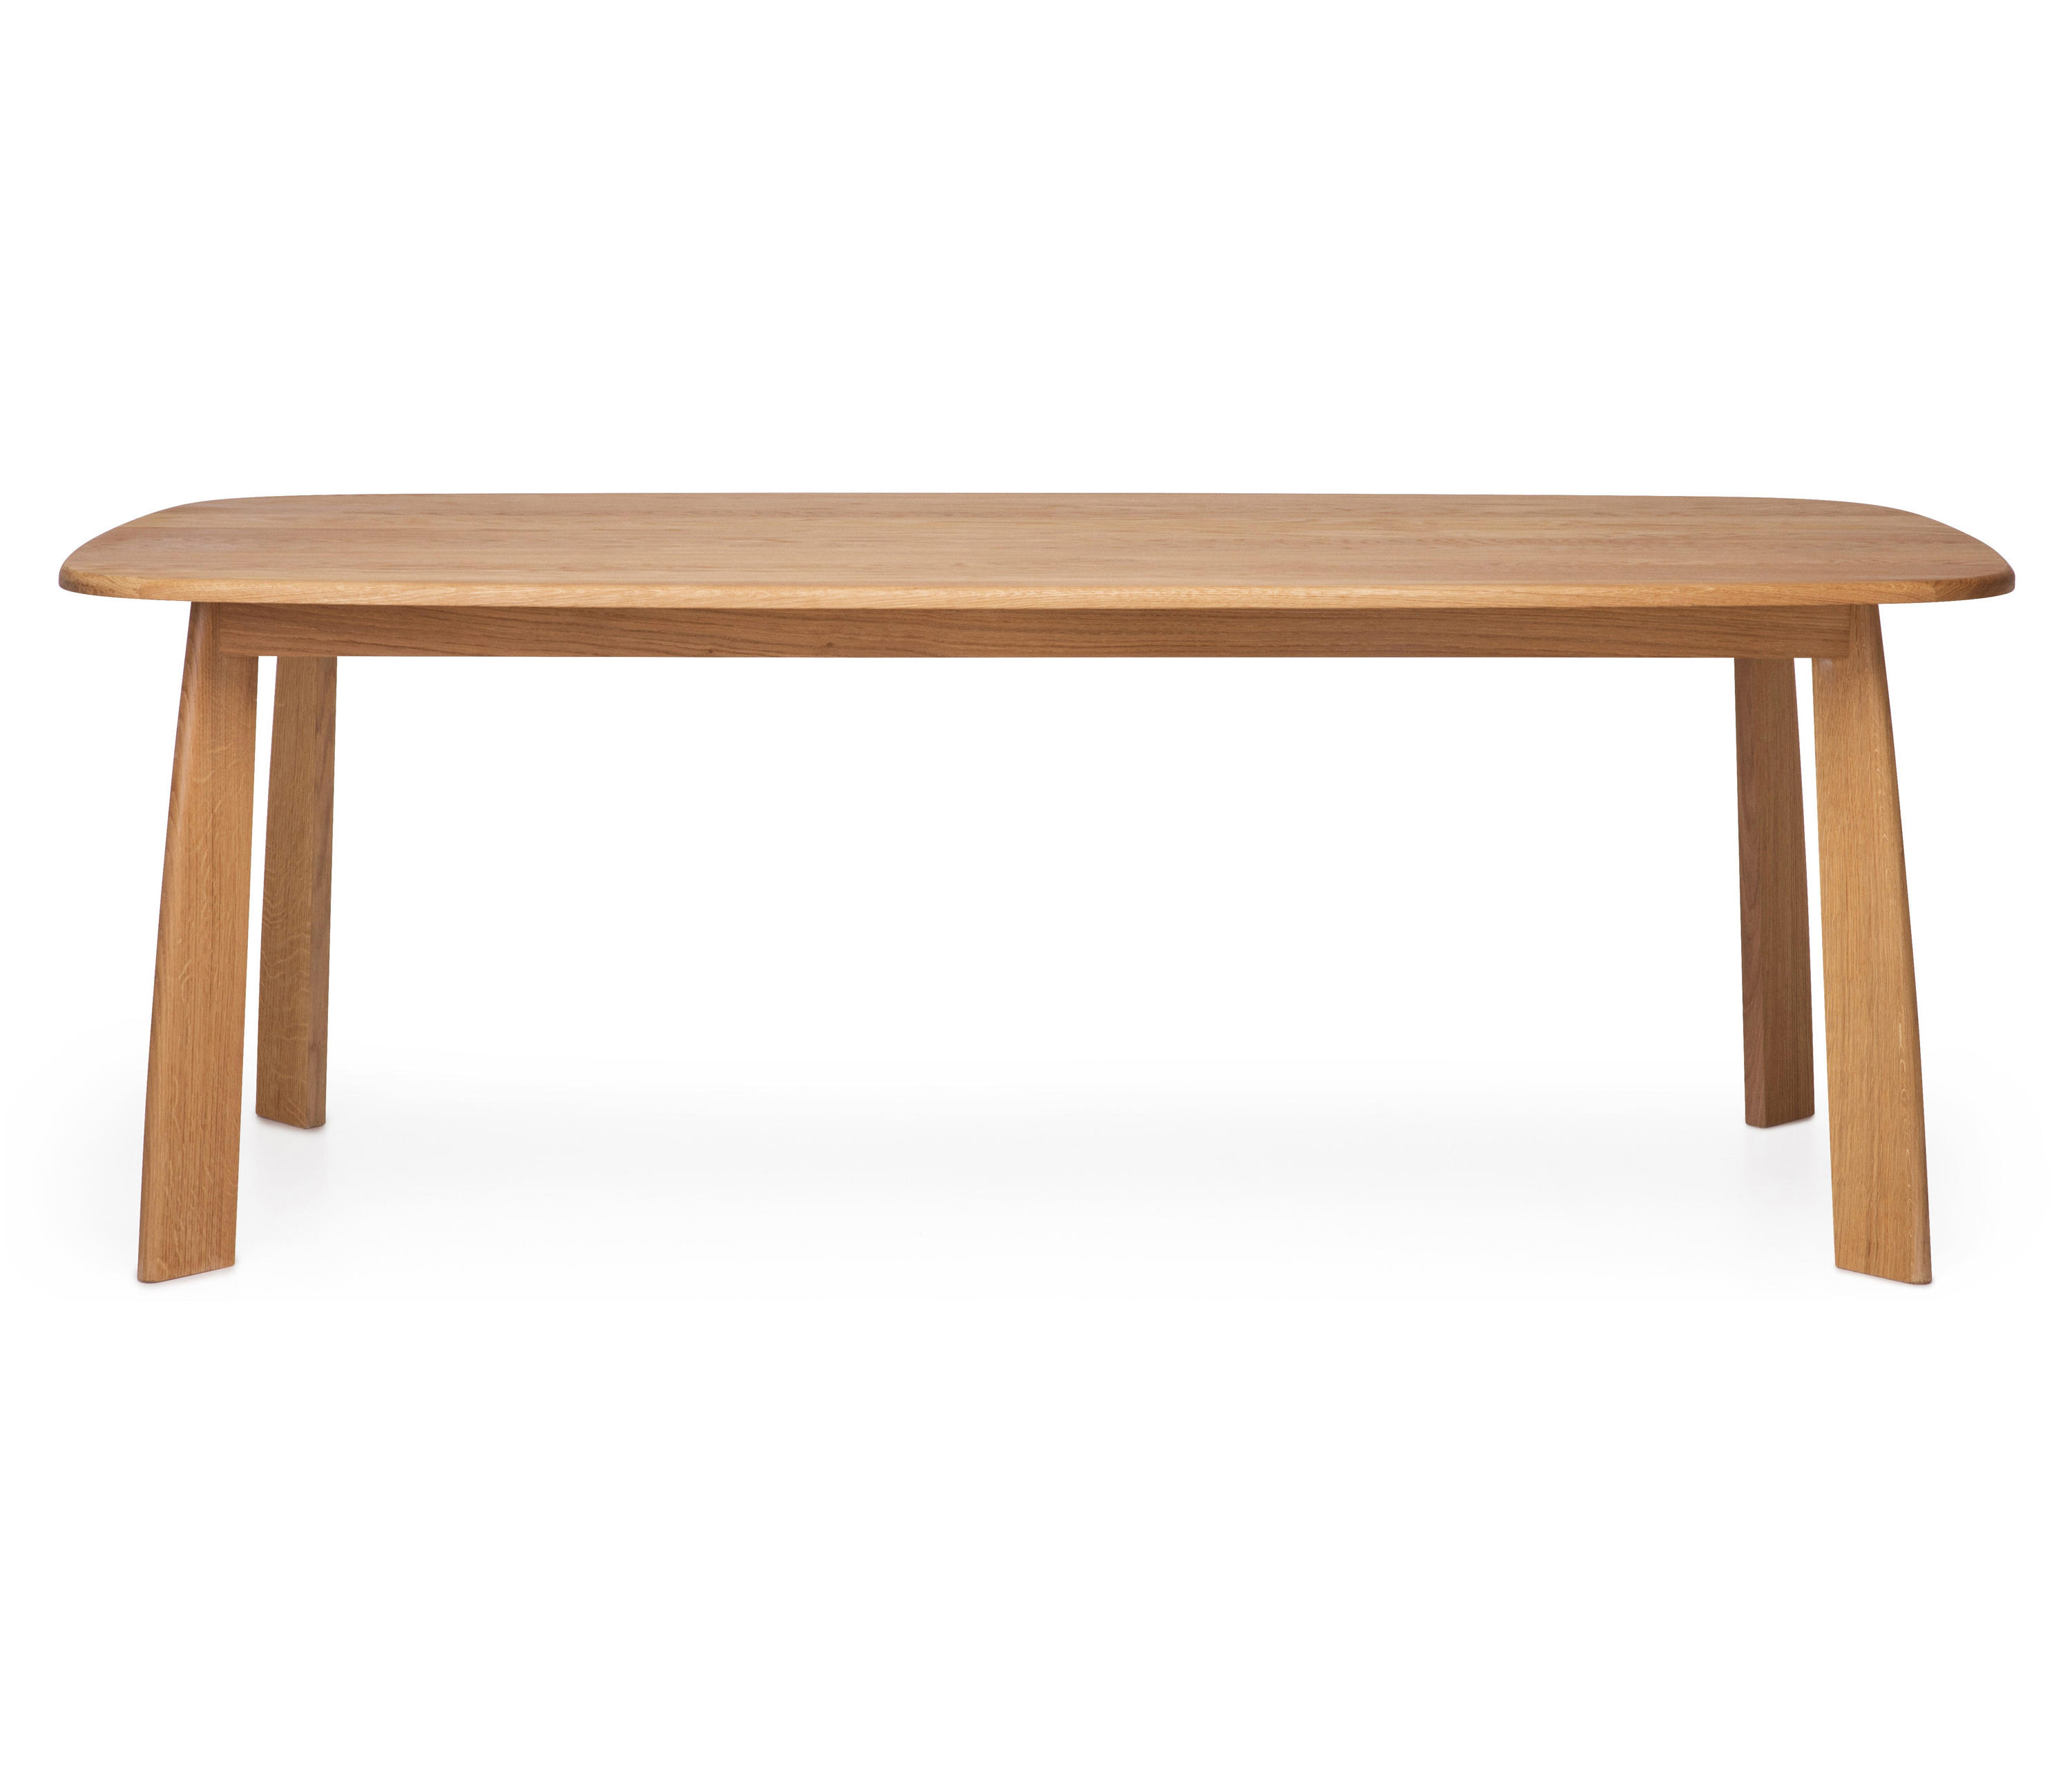 Esstisch Stone Stone Table Wood Esstische Von Quodes Architonic